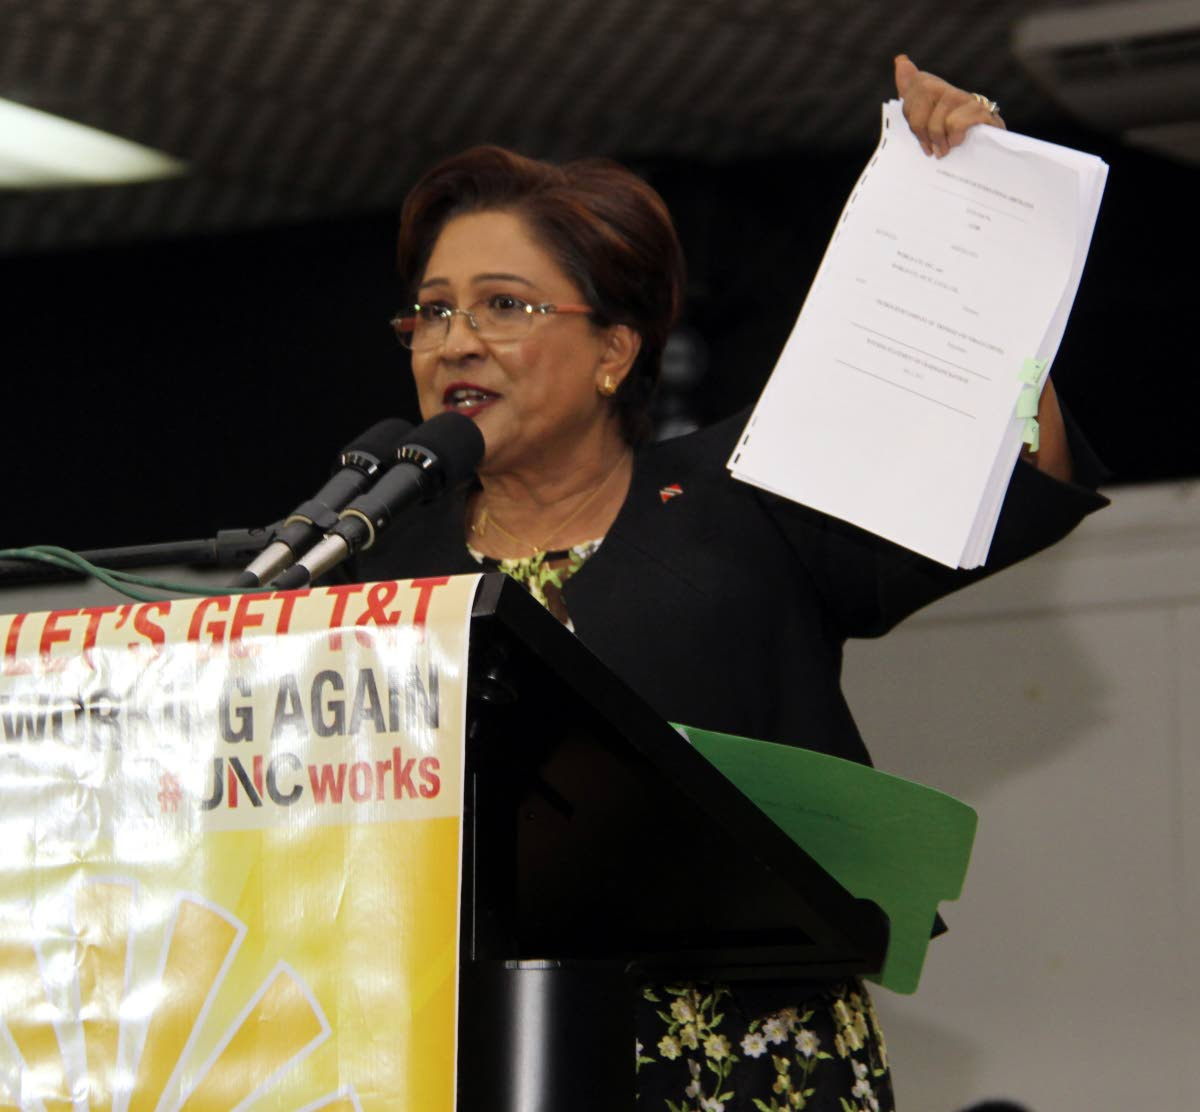 Opposition Leader Kamla Persad-Bissessar addresses supporters at the UNC's Monday Night Forum.